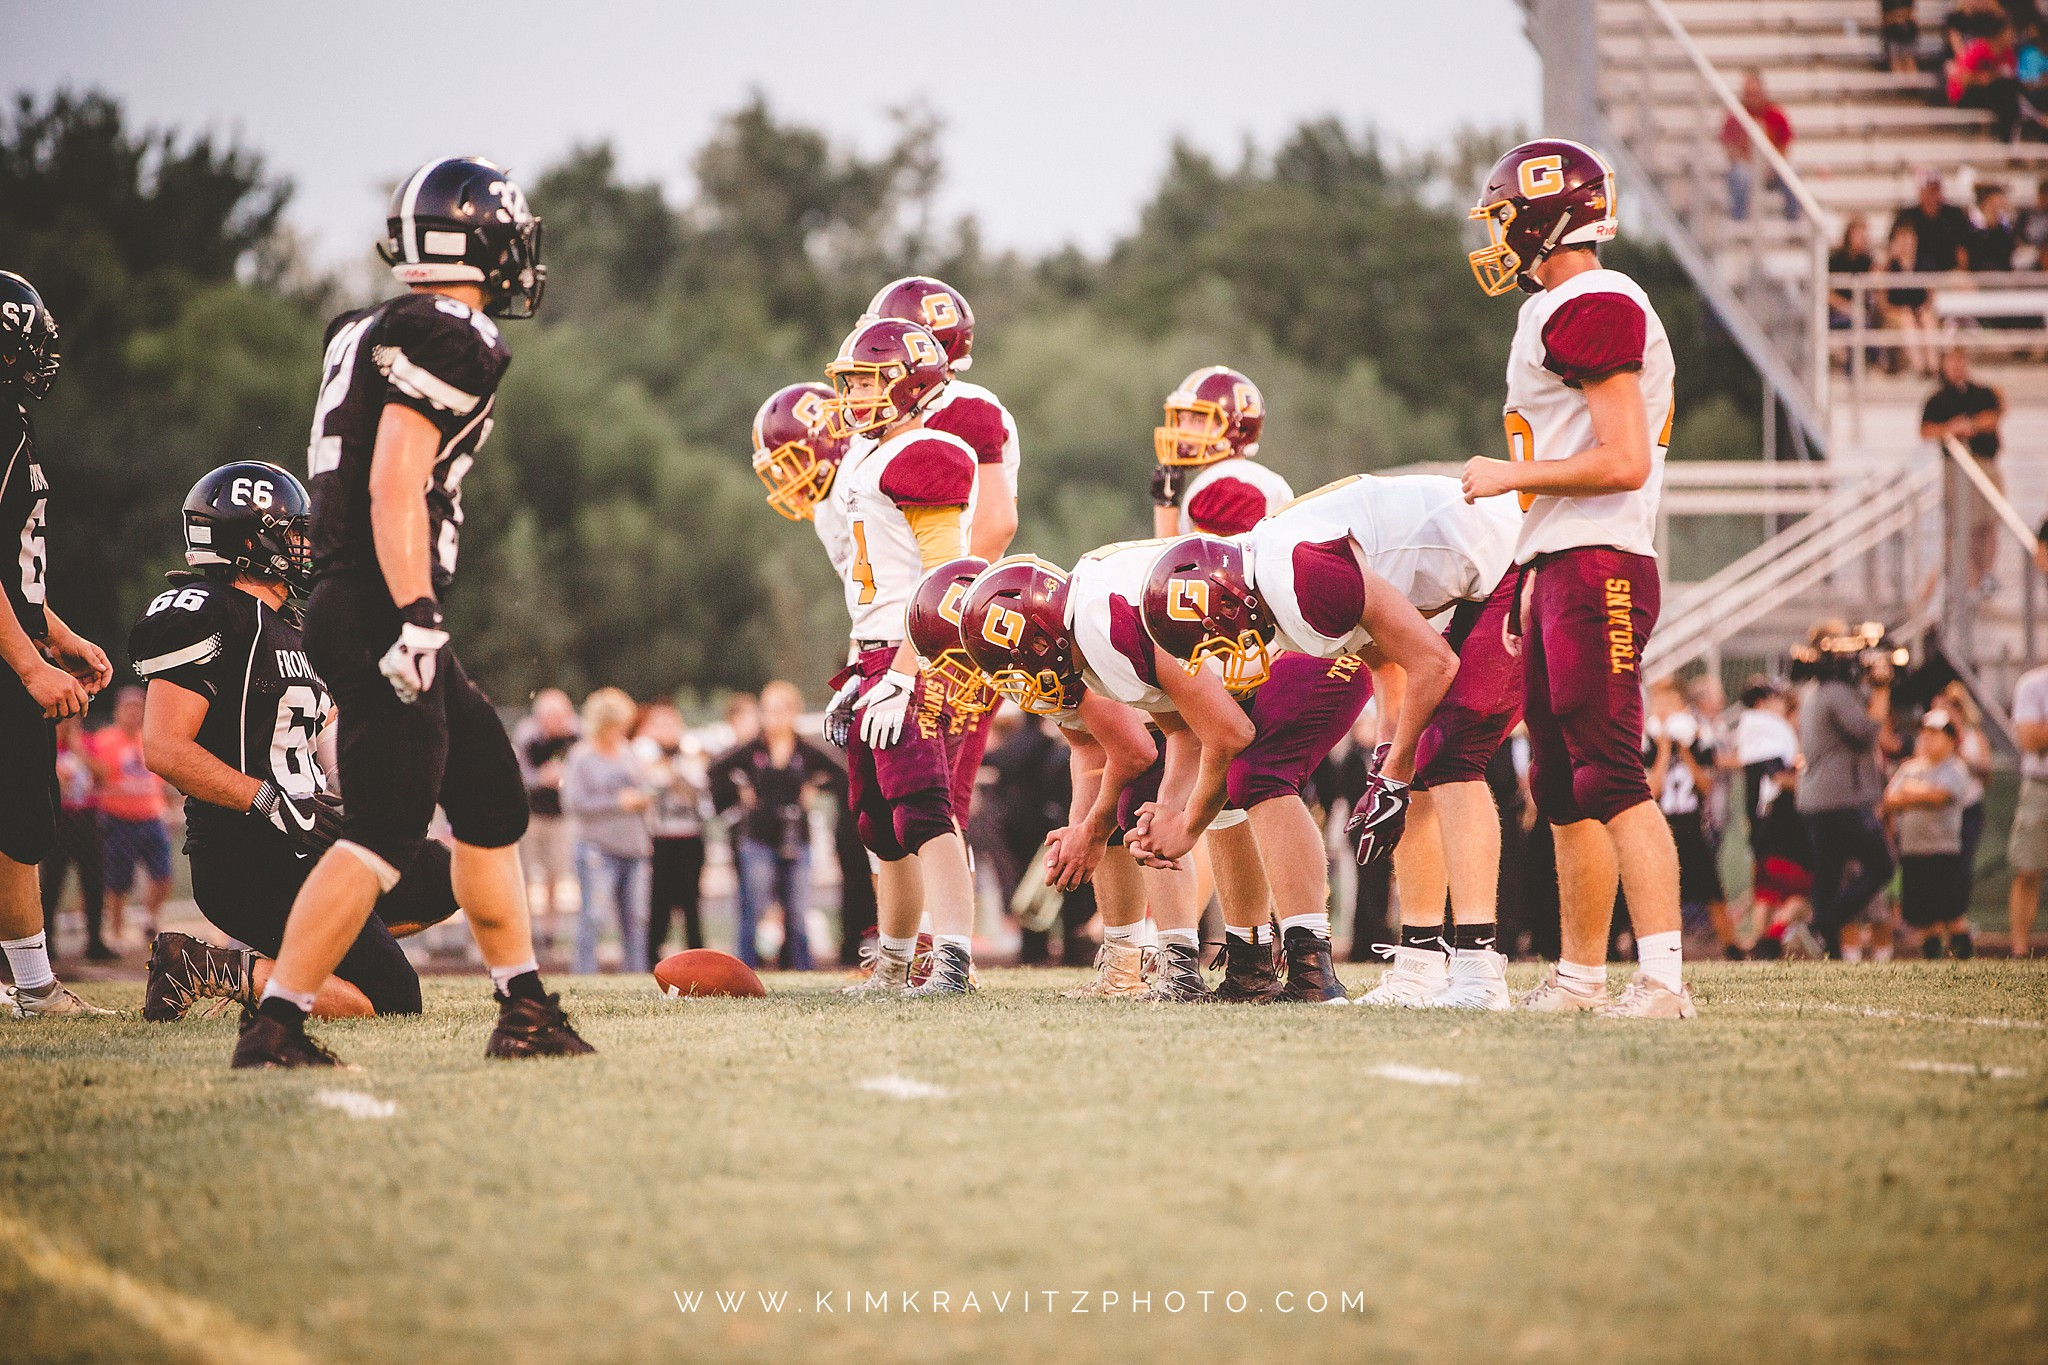 Girard trojans vs frontenac raiders kansas high school football kim kravitz